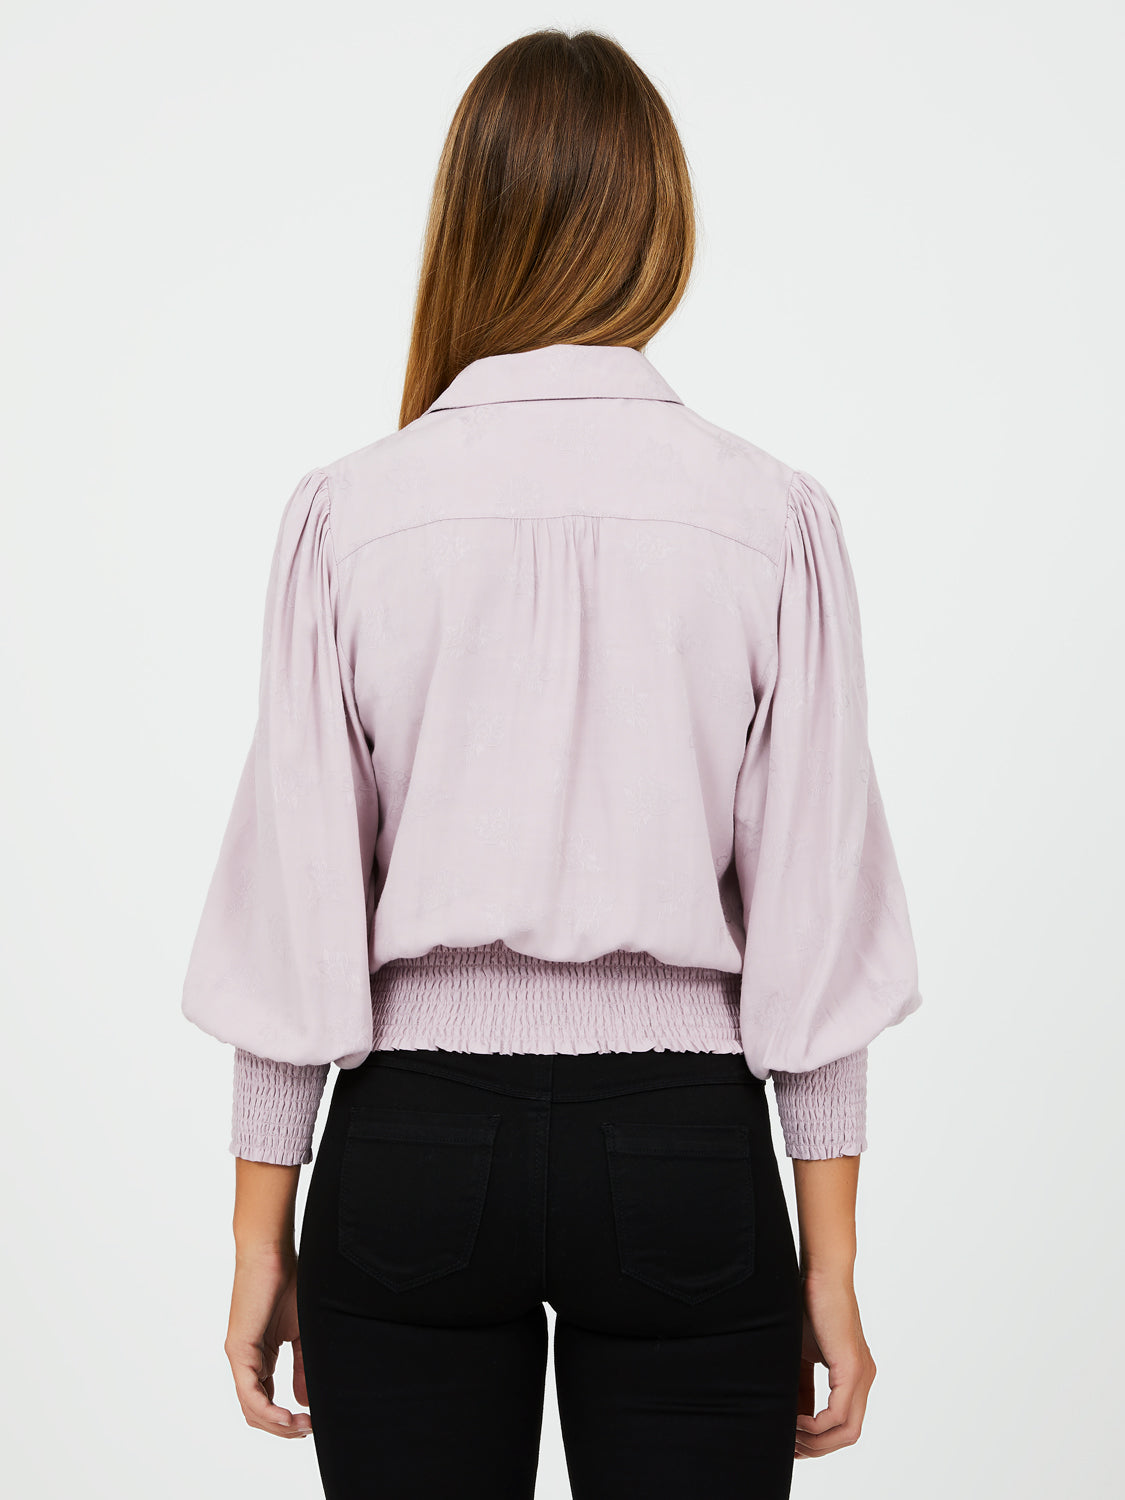 Shirt Collar ¾ Puff Sleeves Jacquard Blouse